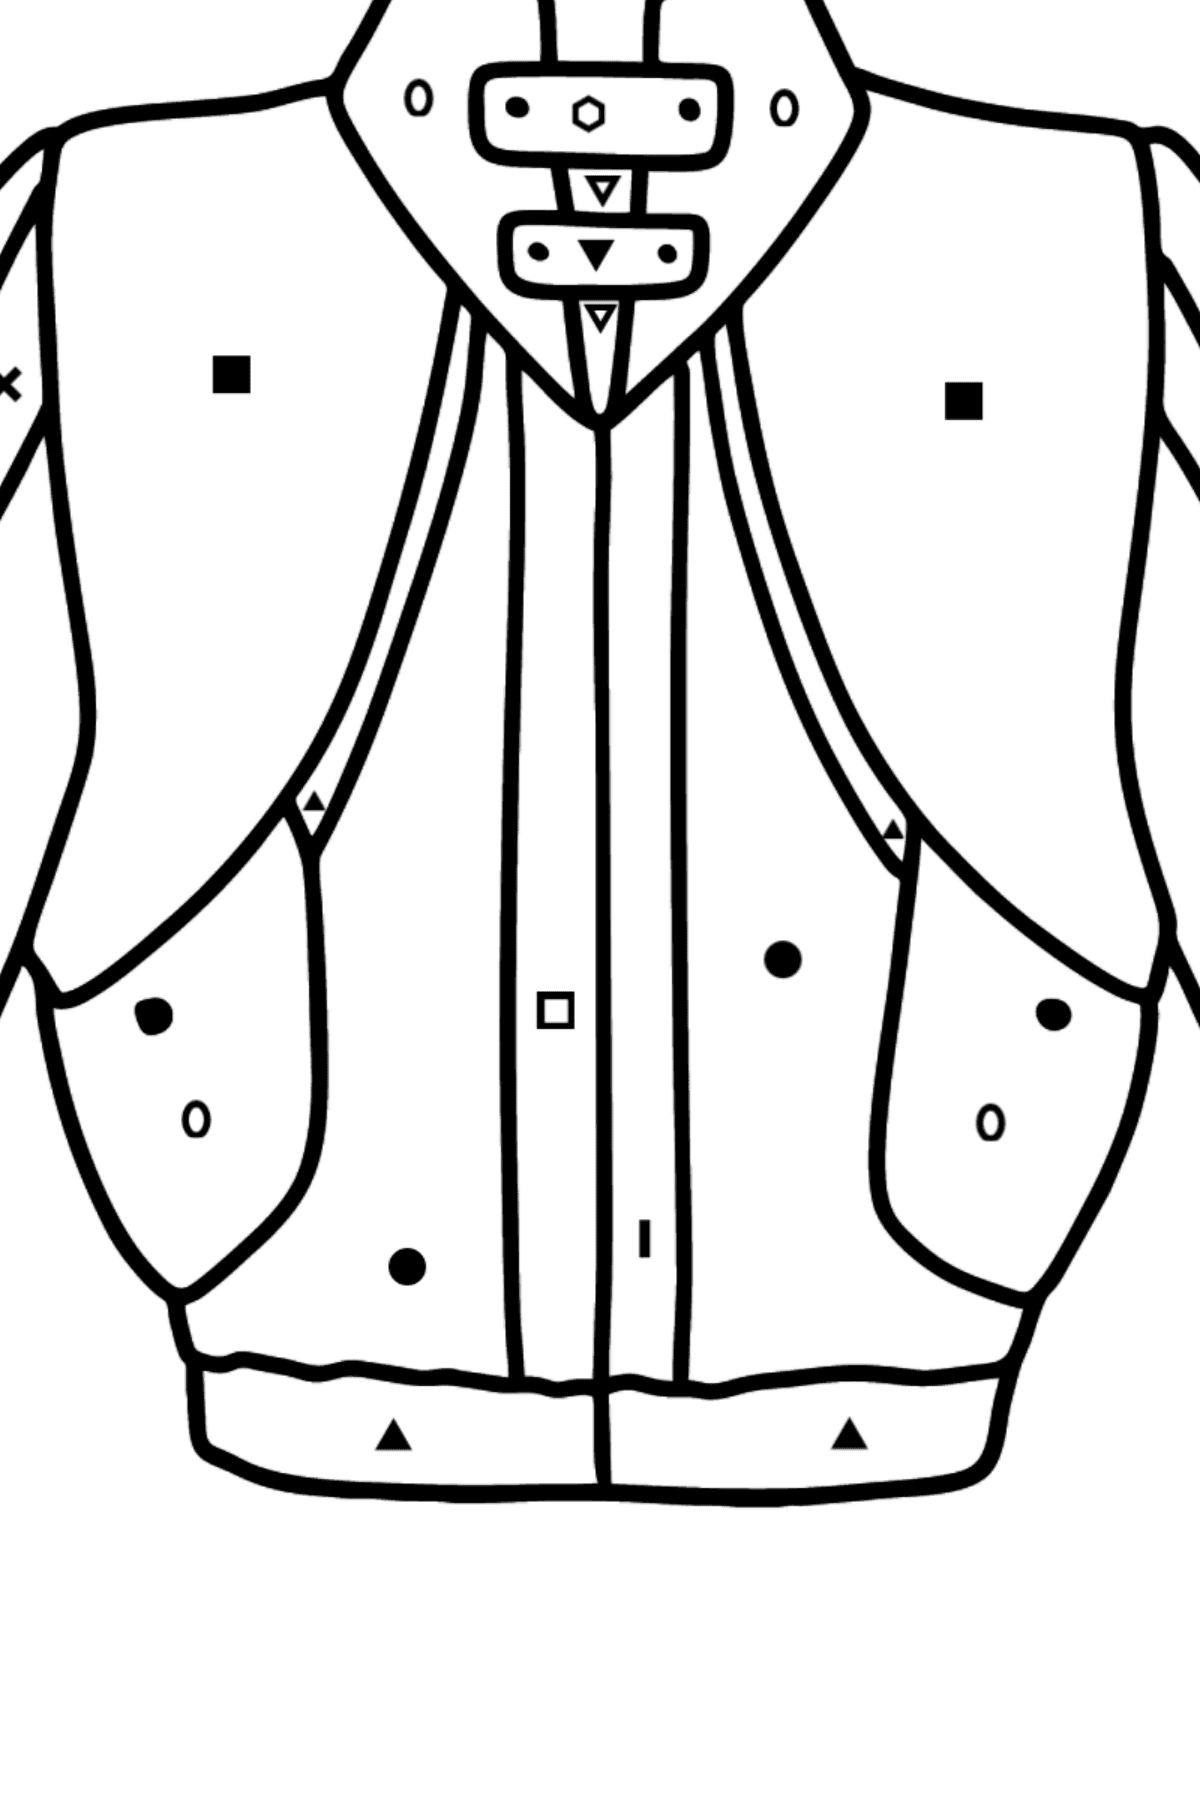 Jacket coloring page - Coloring by Symbols and Geometric Shapes for Kids